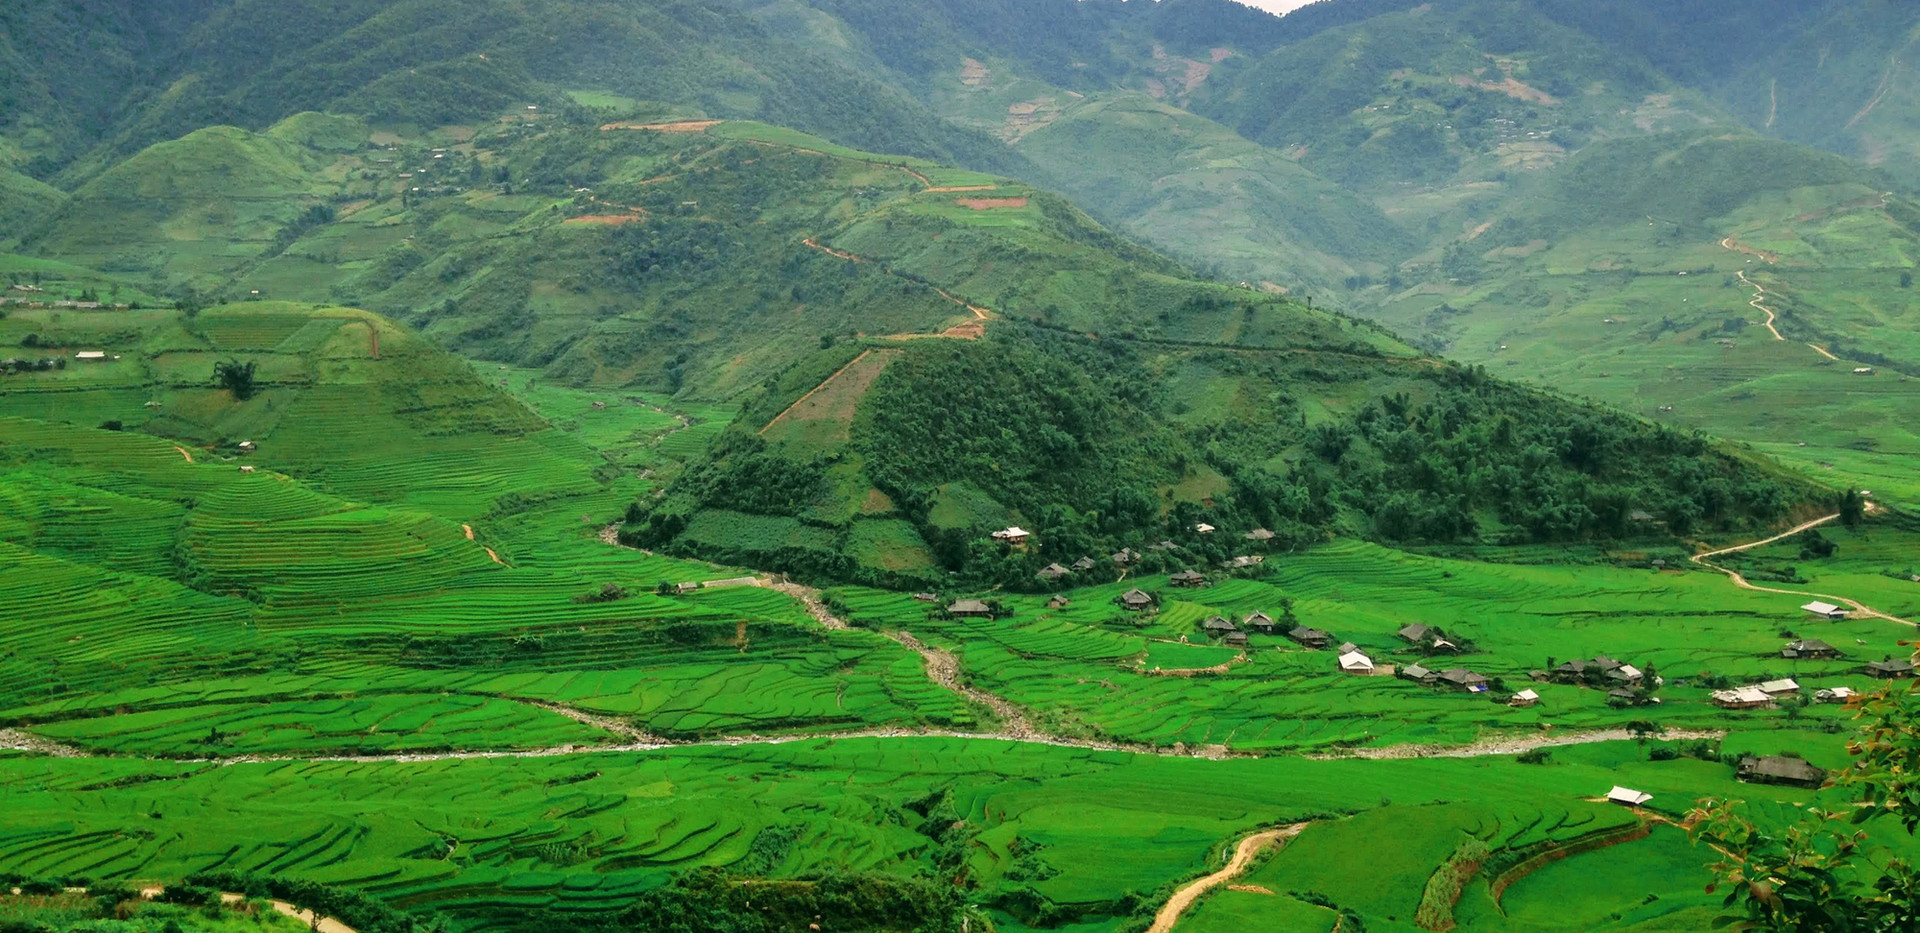 Trekking path in Mu Cang Chai